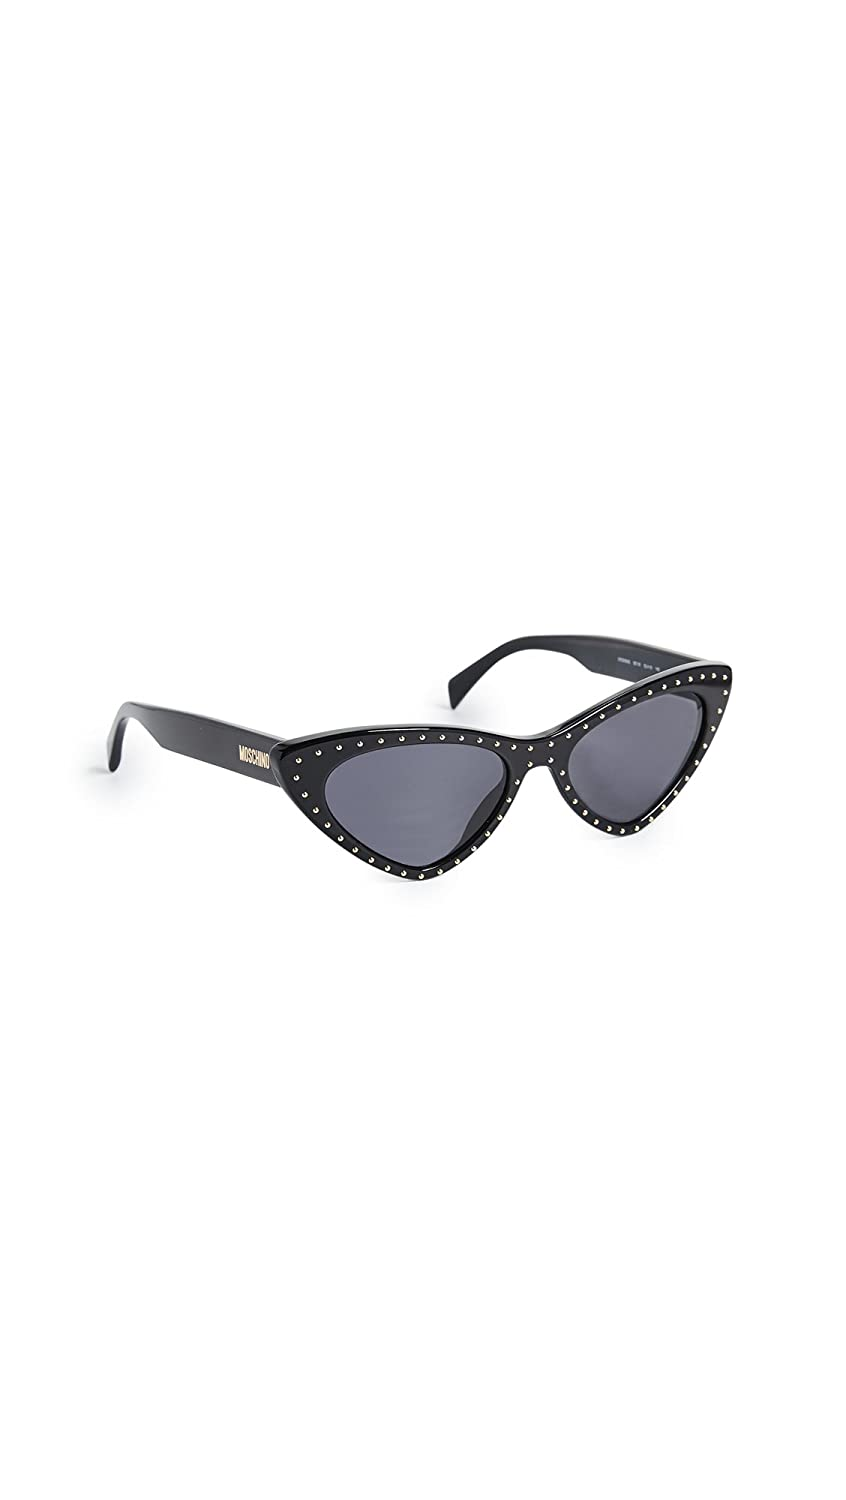 d61bfb7a16d90 Amazon.com  Moschino Women s Pointed Cat Eye Sunglasses